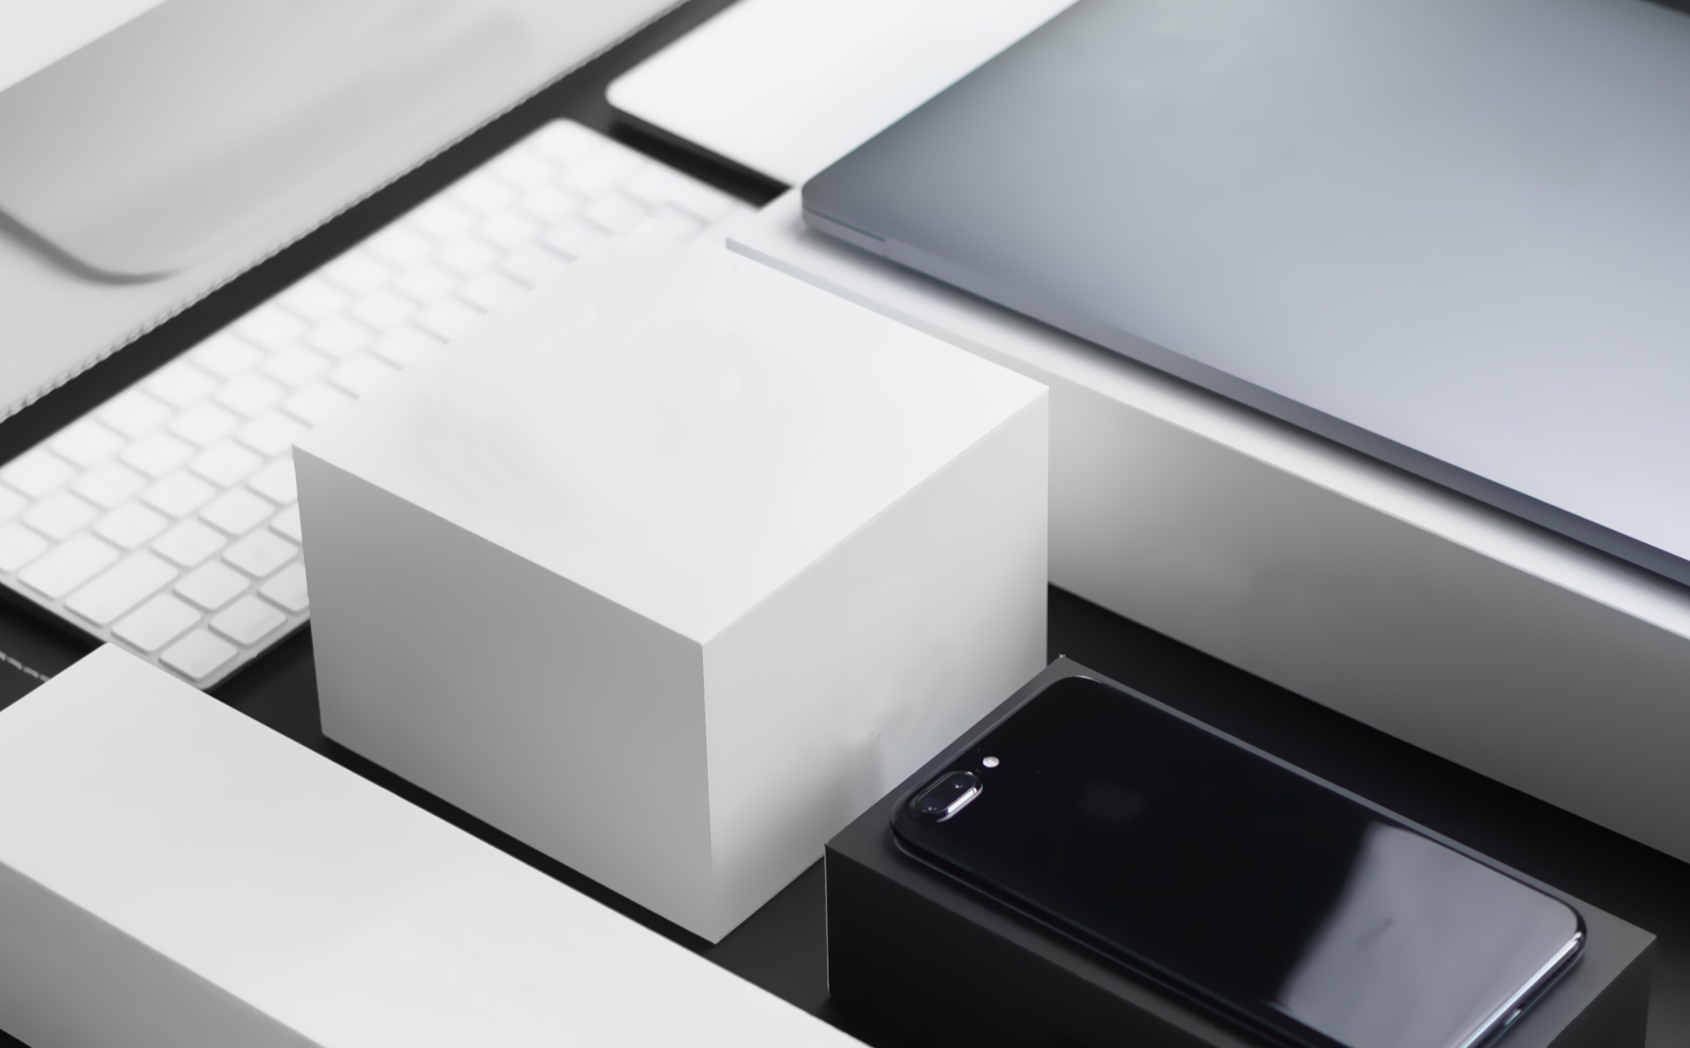 Apple products spread out on a table, boxes, keyboards, phones and computers